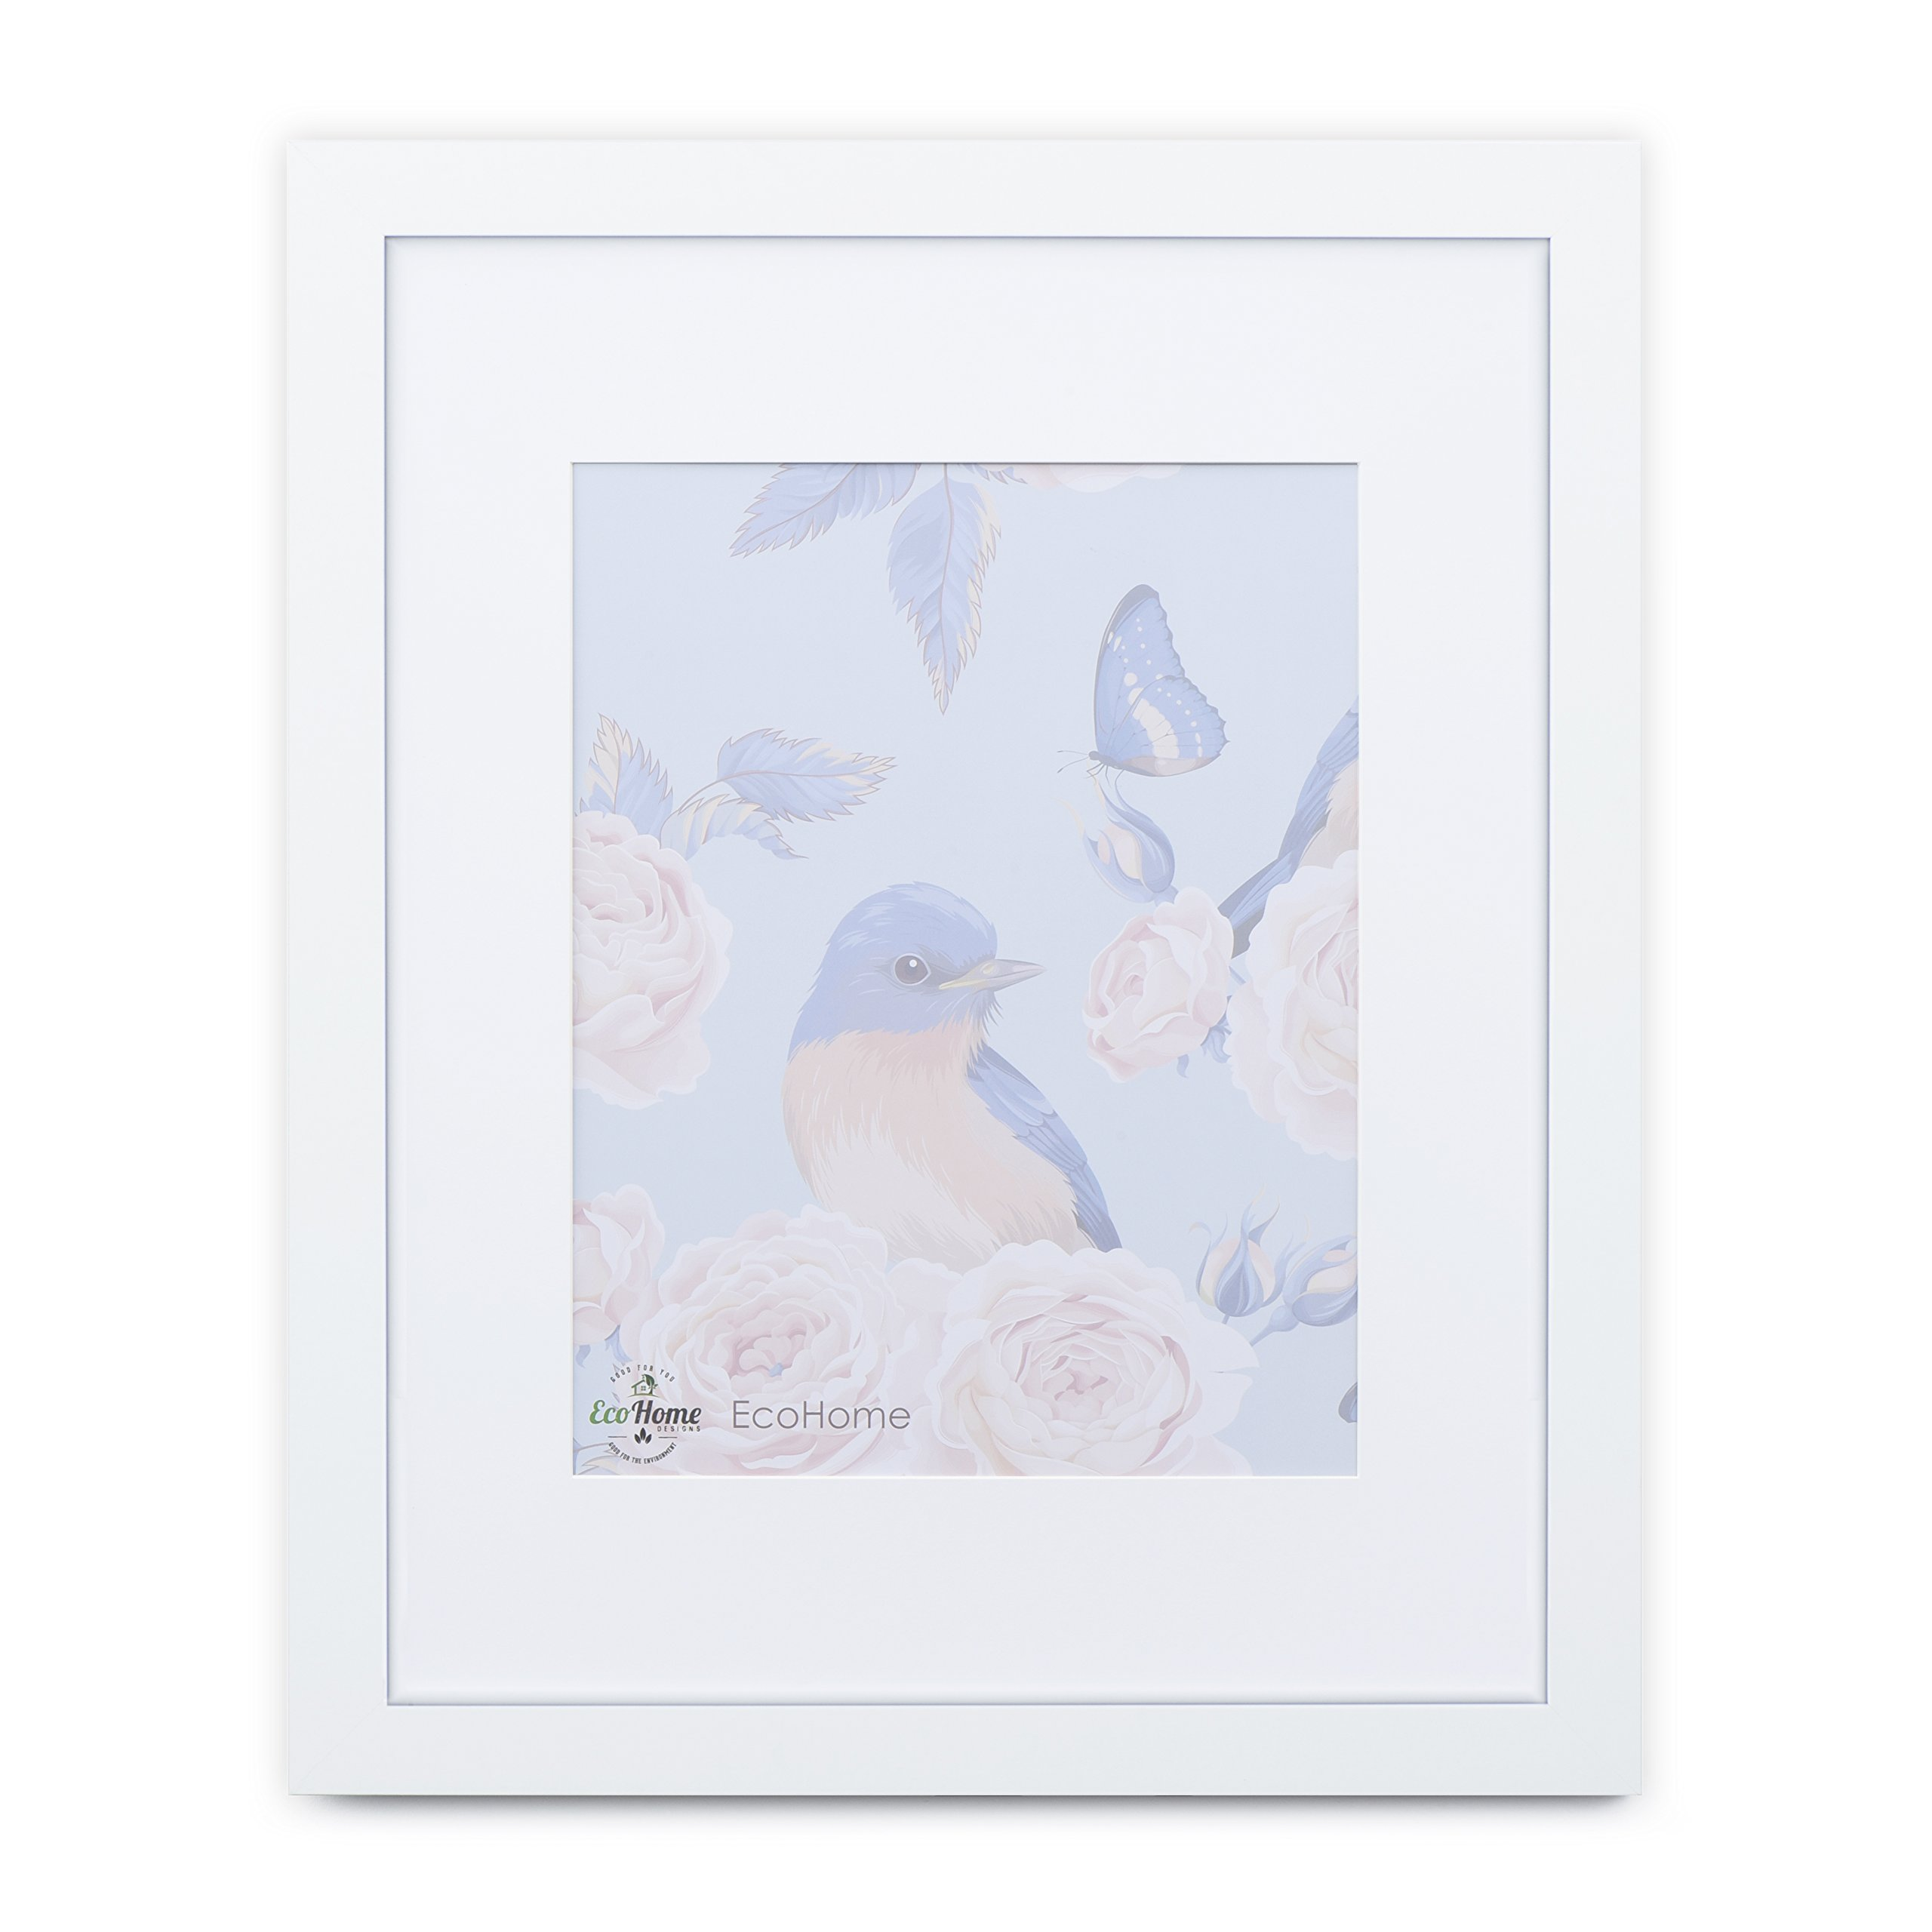 12x16 White Picture Frame - Matted to 8x12 Frames by EcoHome